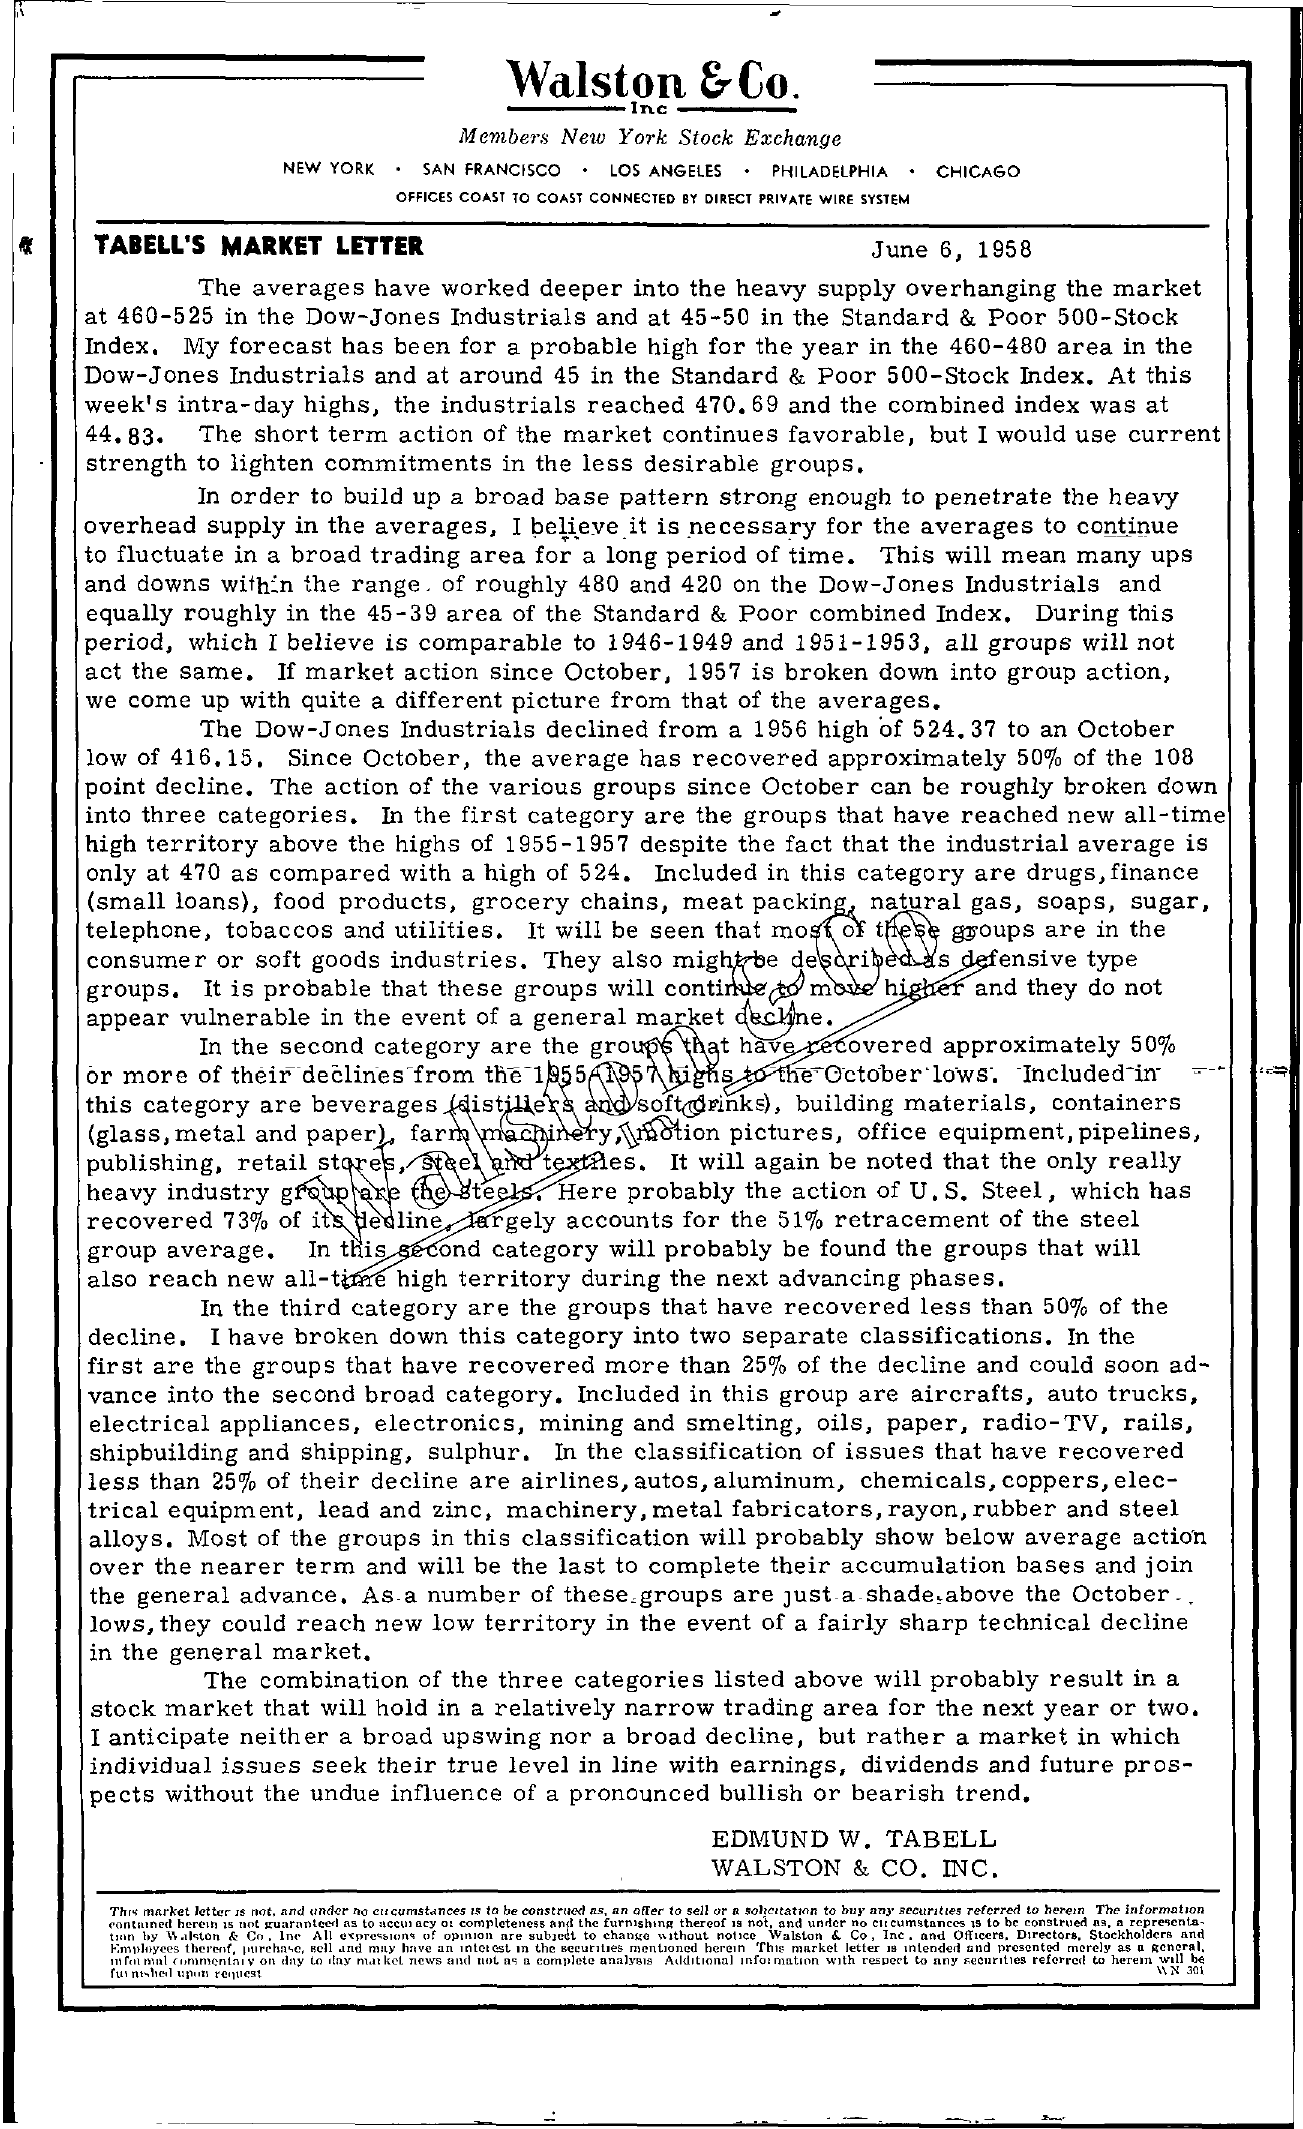 Tabell's Market Letter - June 06, 1958 page 1